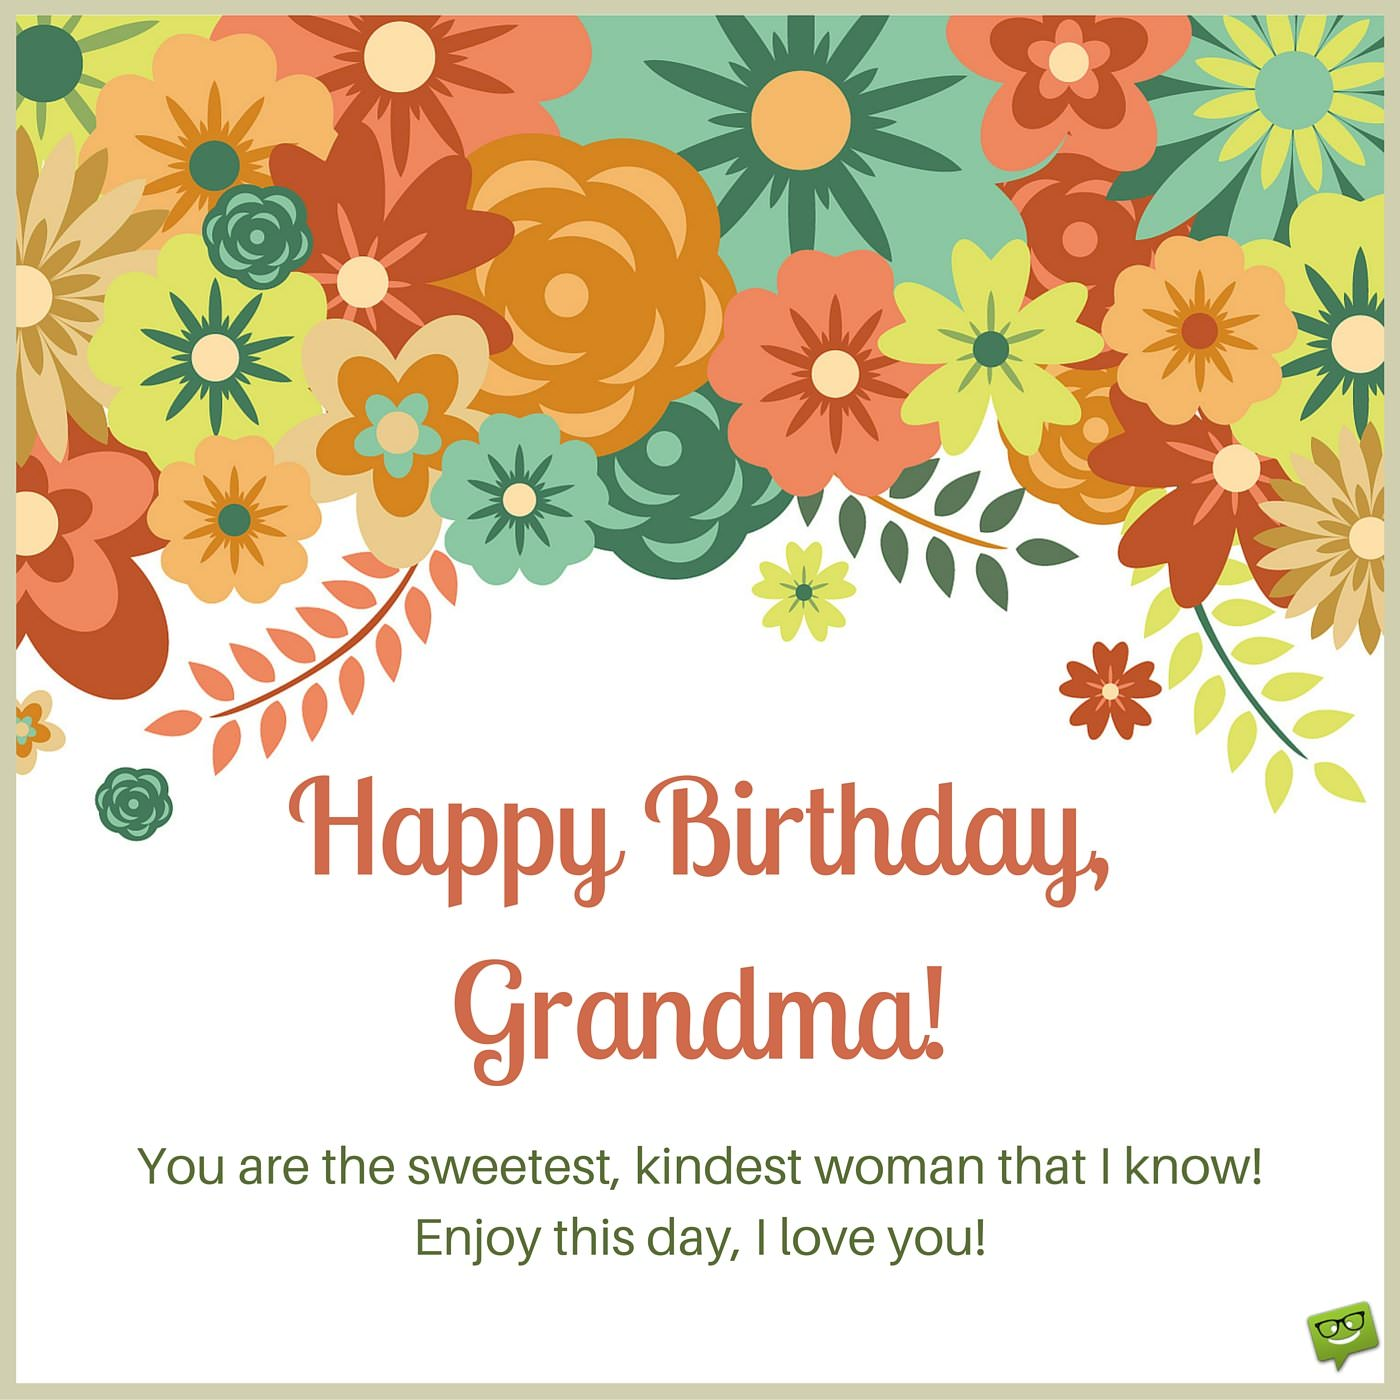 birthday message for grandmother tagalog ; Birthday-wish-for-Grandma-on-card-with-drawings-of-colorful-flowers